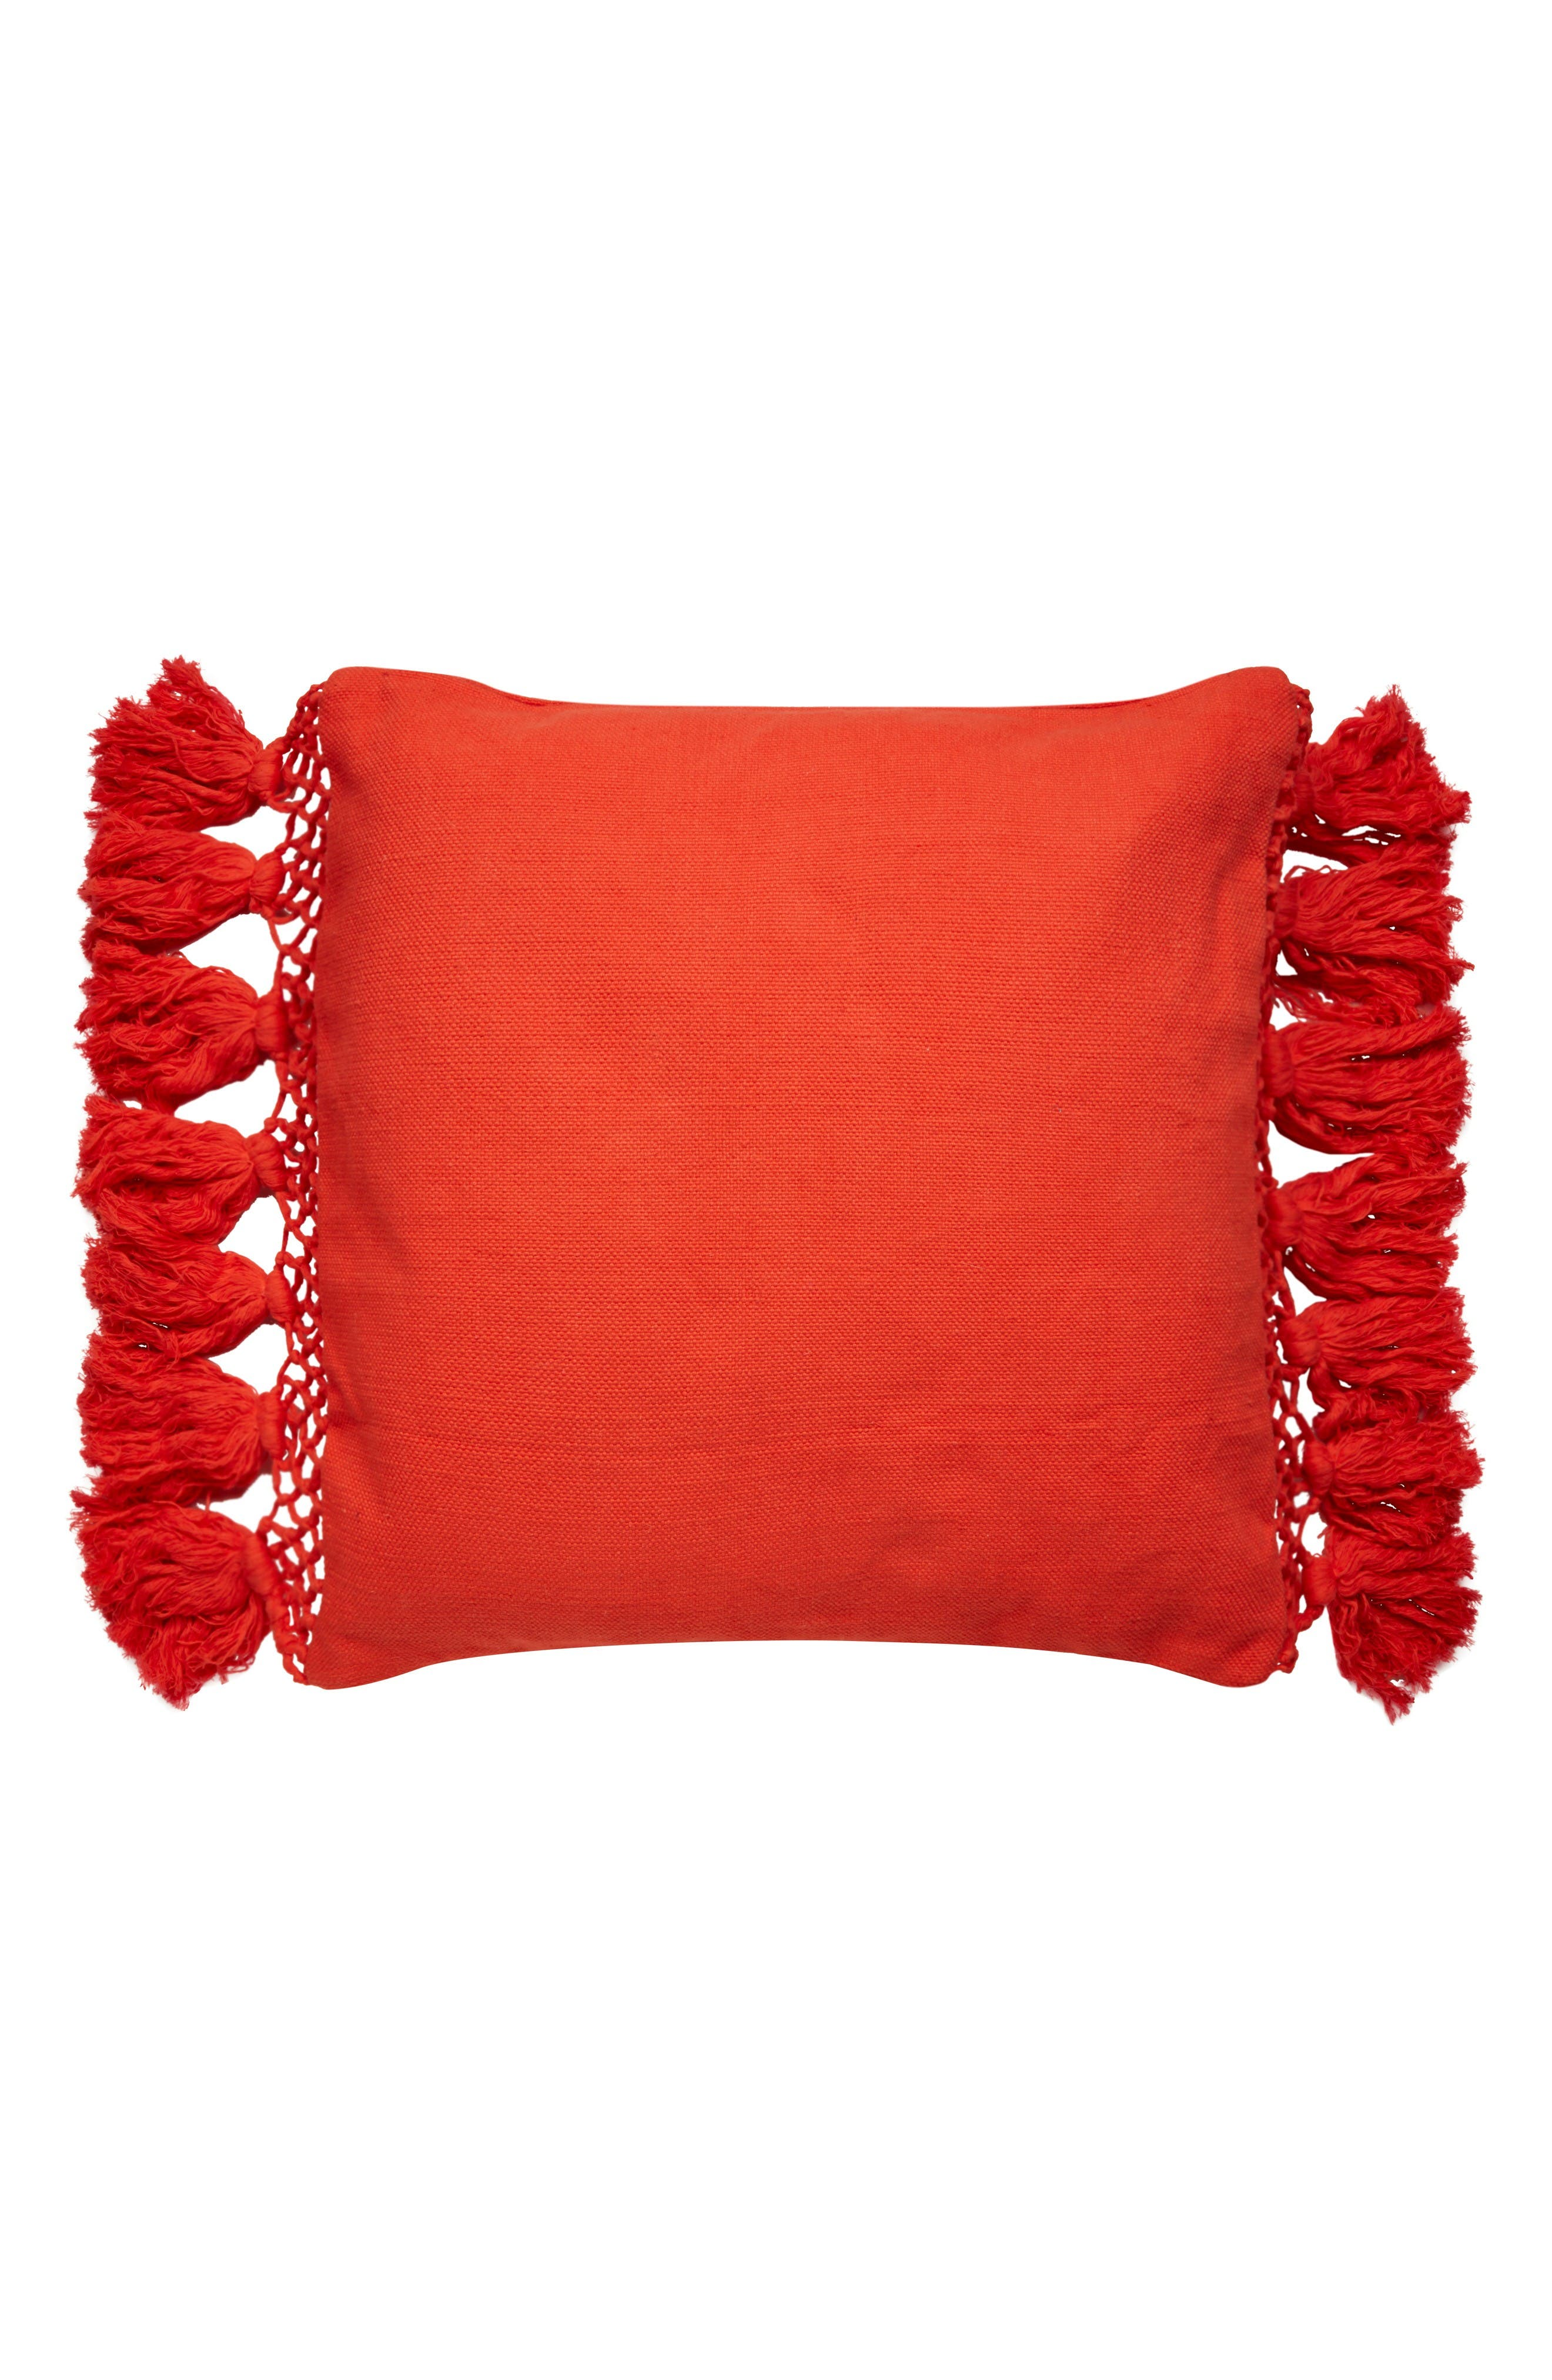 KATE SPADE NEW YORK tassel accent pillow